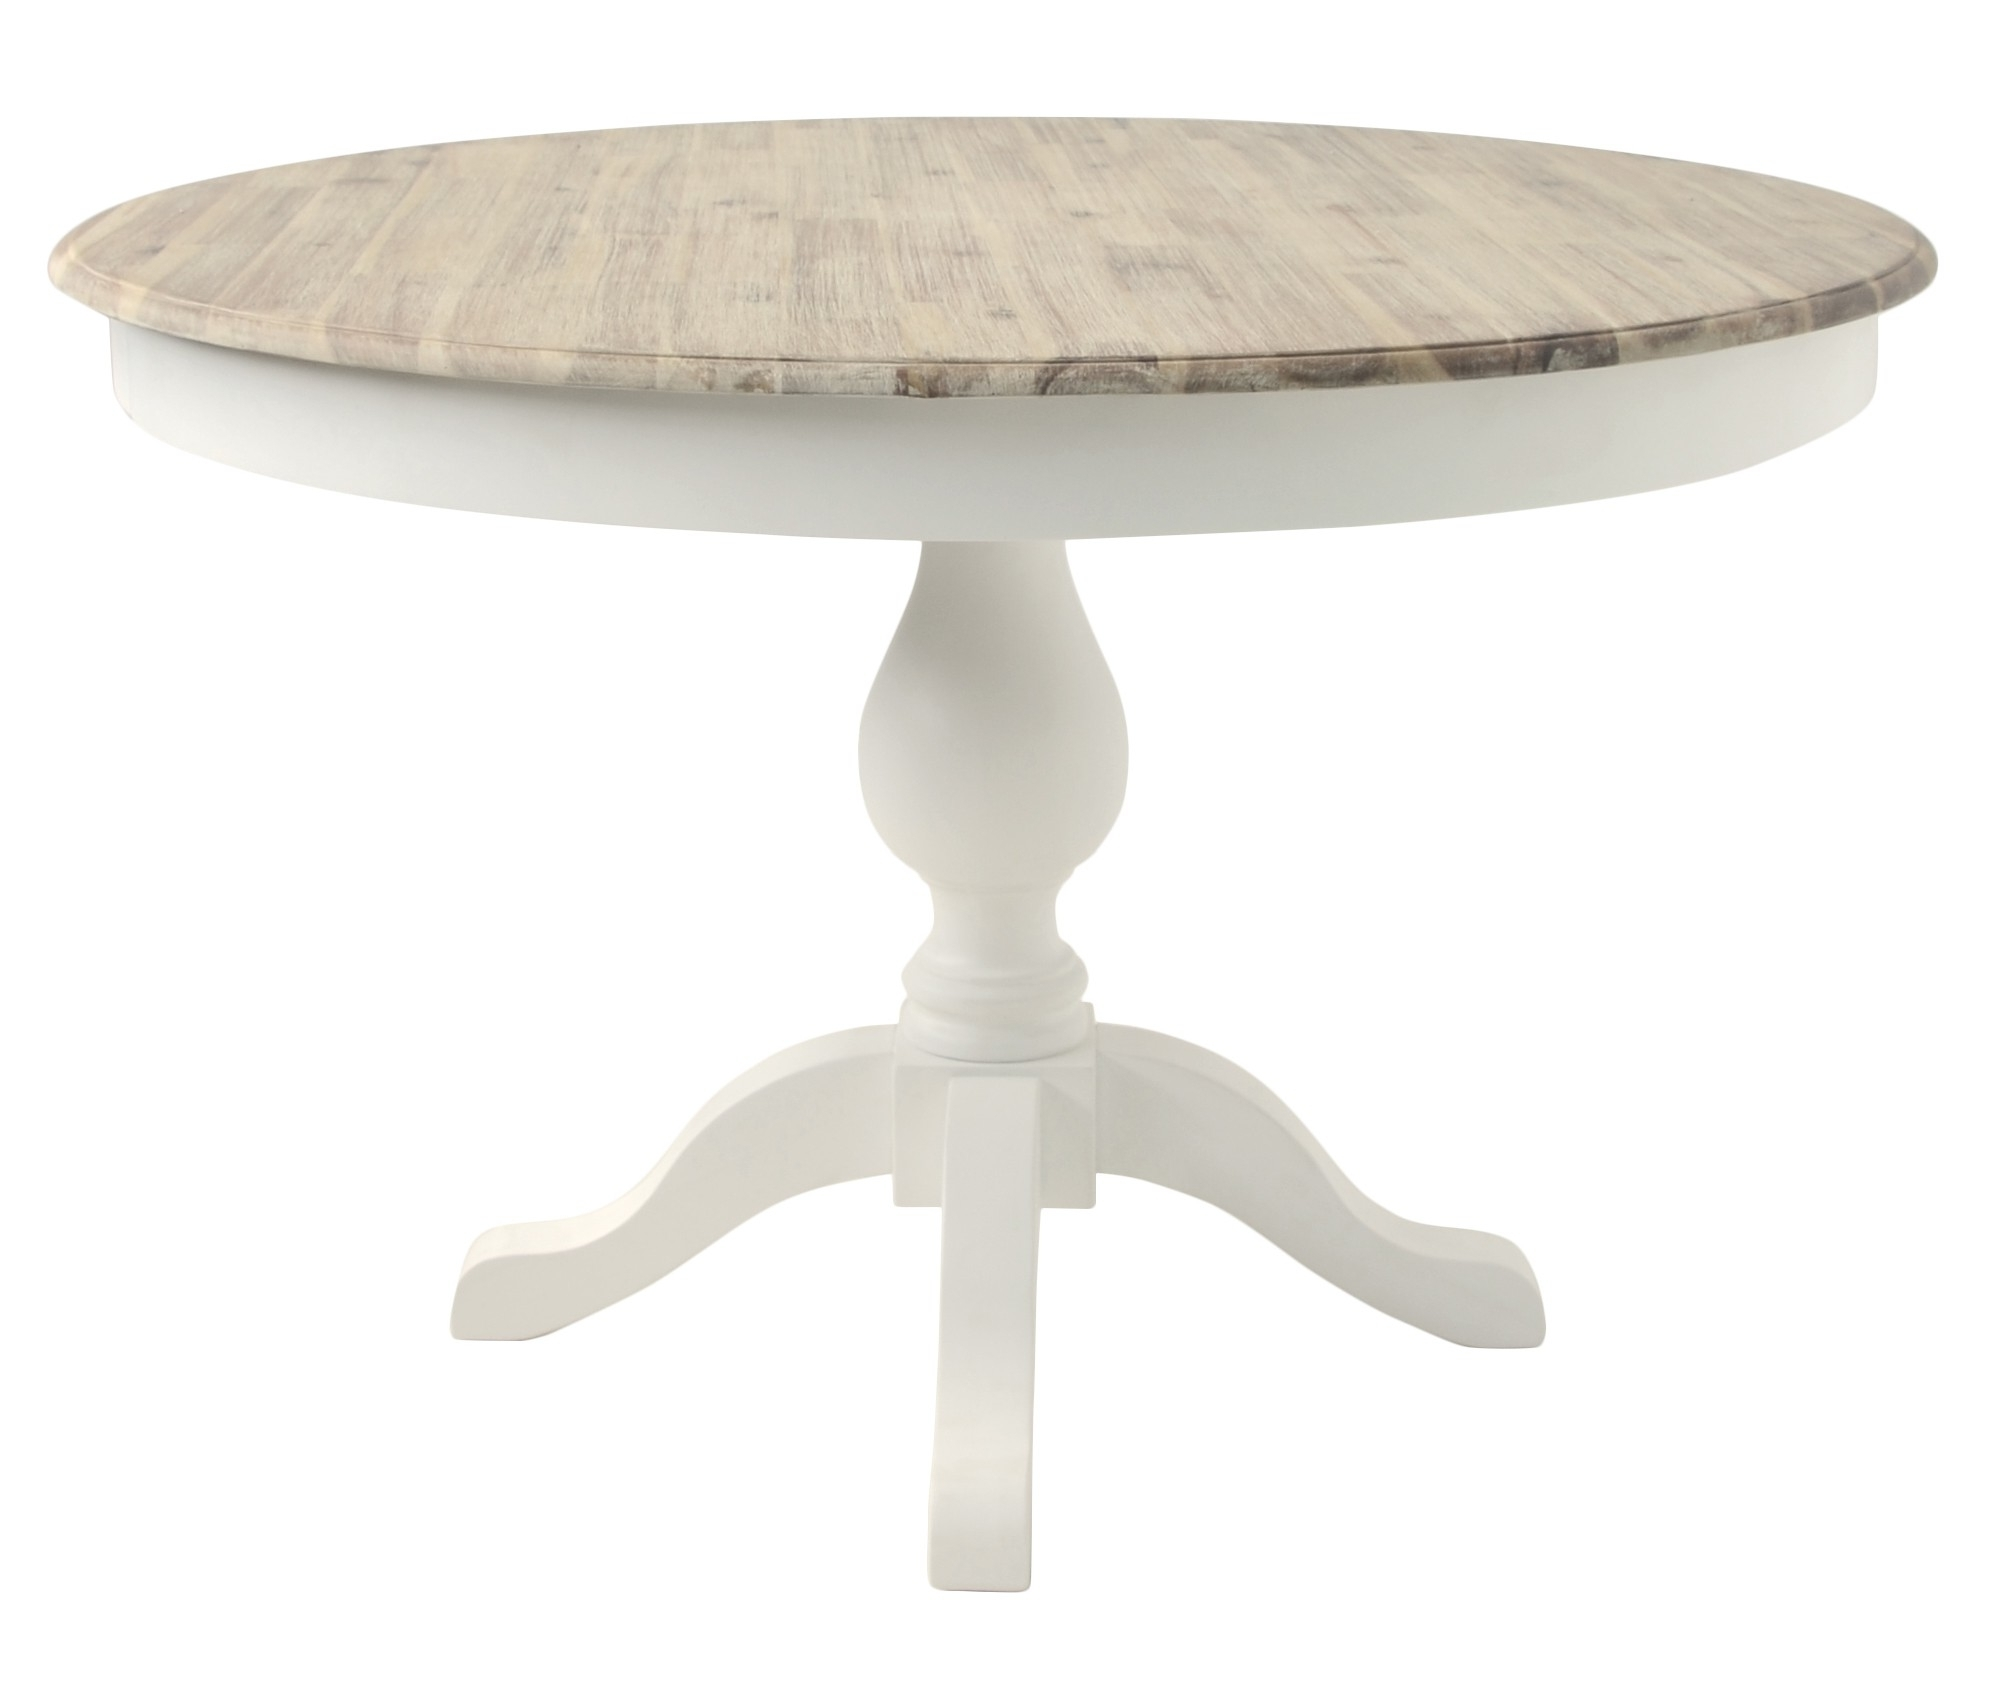 2018 White Circle Dining Tables intended for Florence Large Pedestal Round Dining Table (120Cm) - White